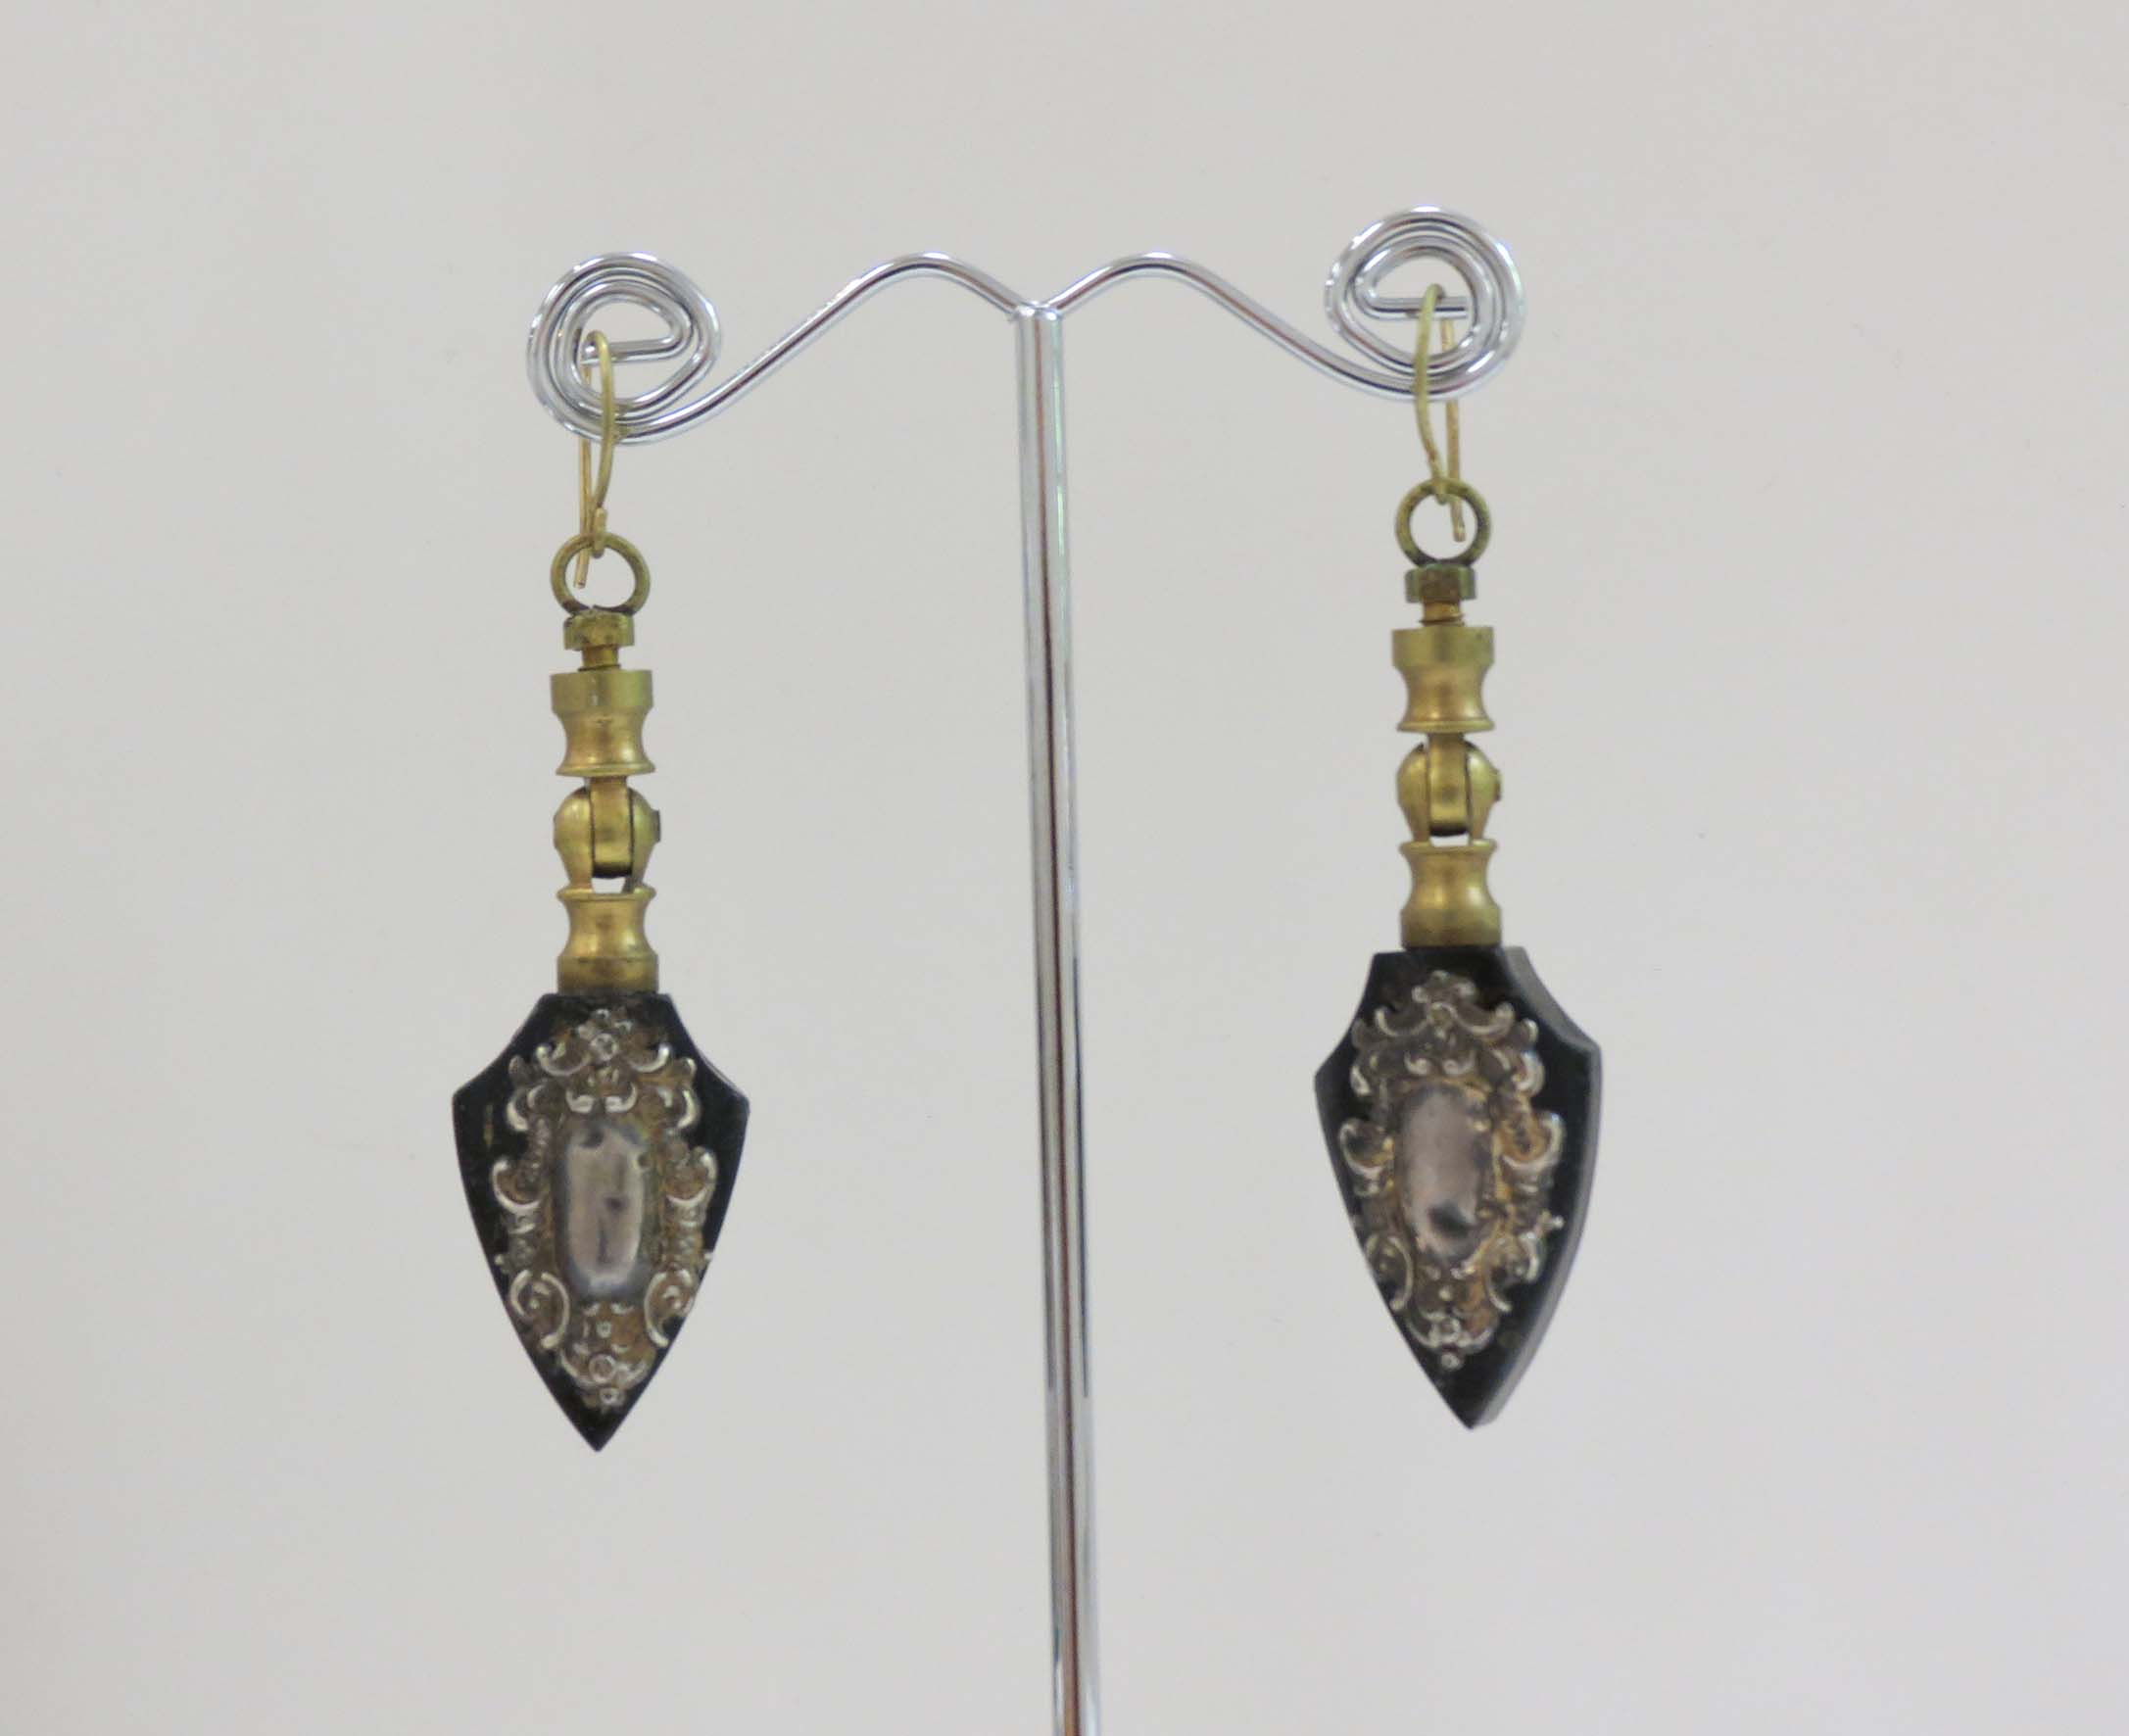 16. Kathy Aspinall, 'Pull', 2018, vintage drawer pulls, antique paper, silver, earrings, $270 blurry